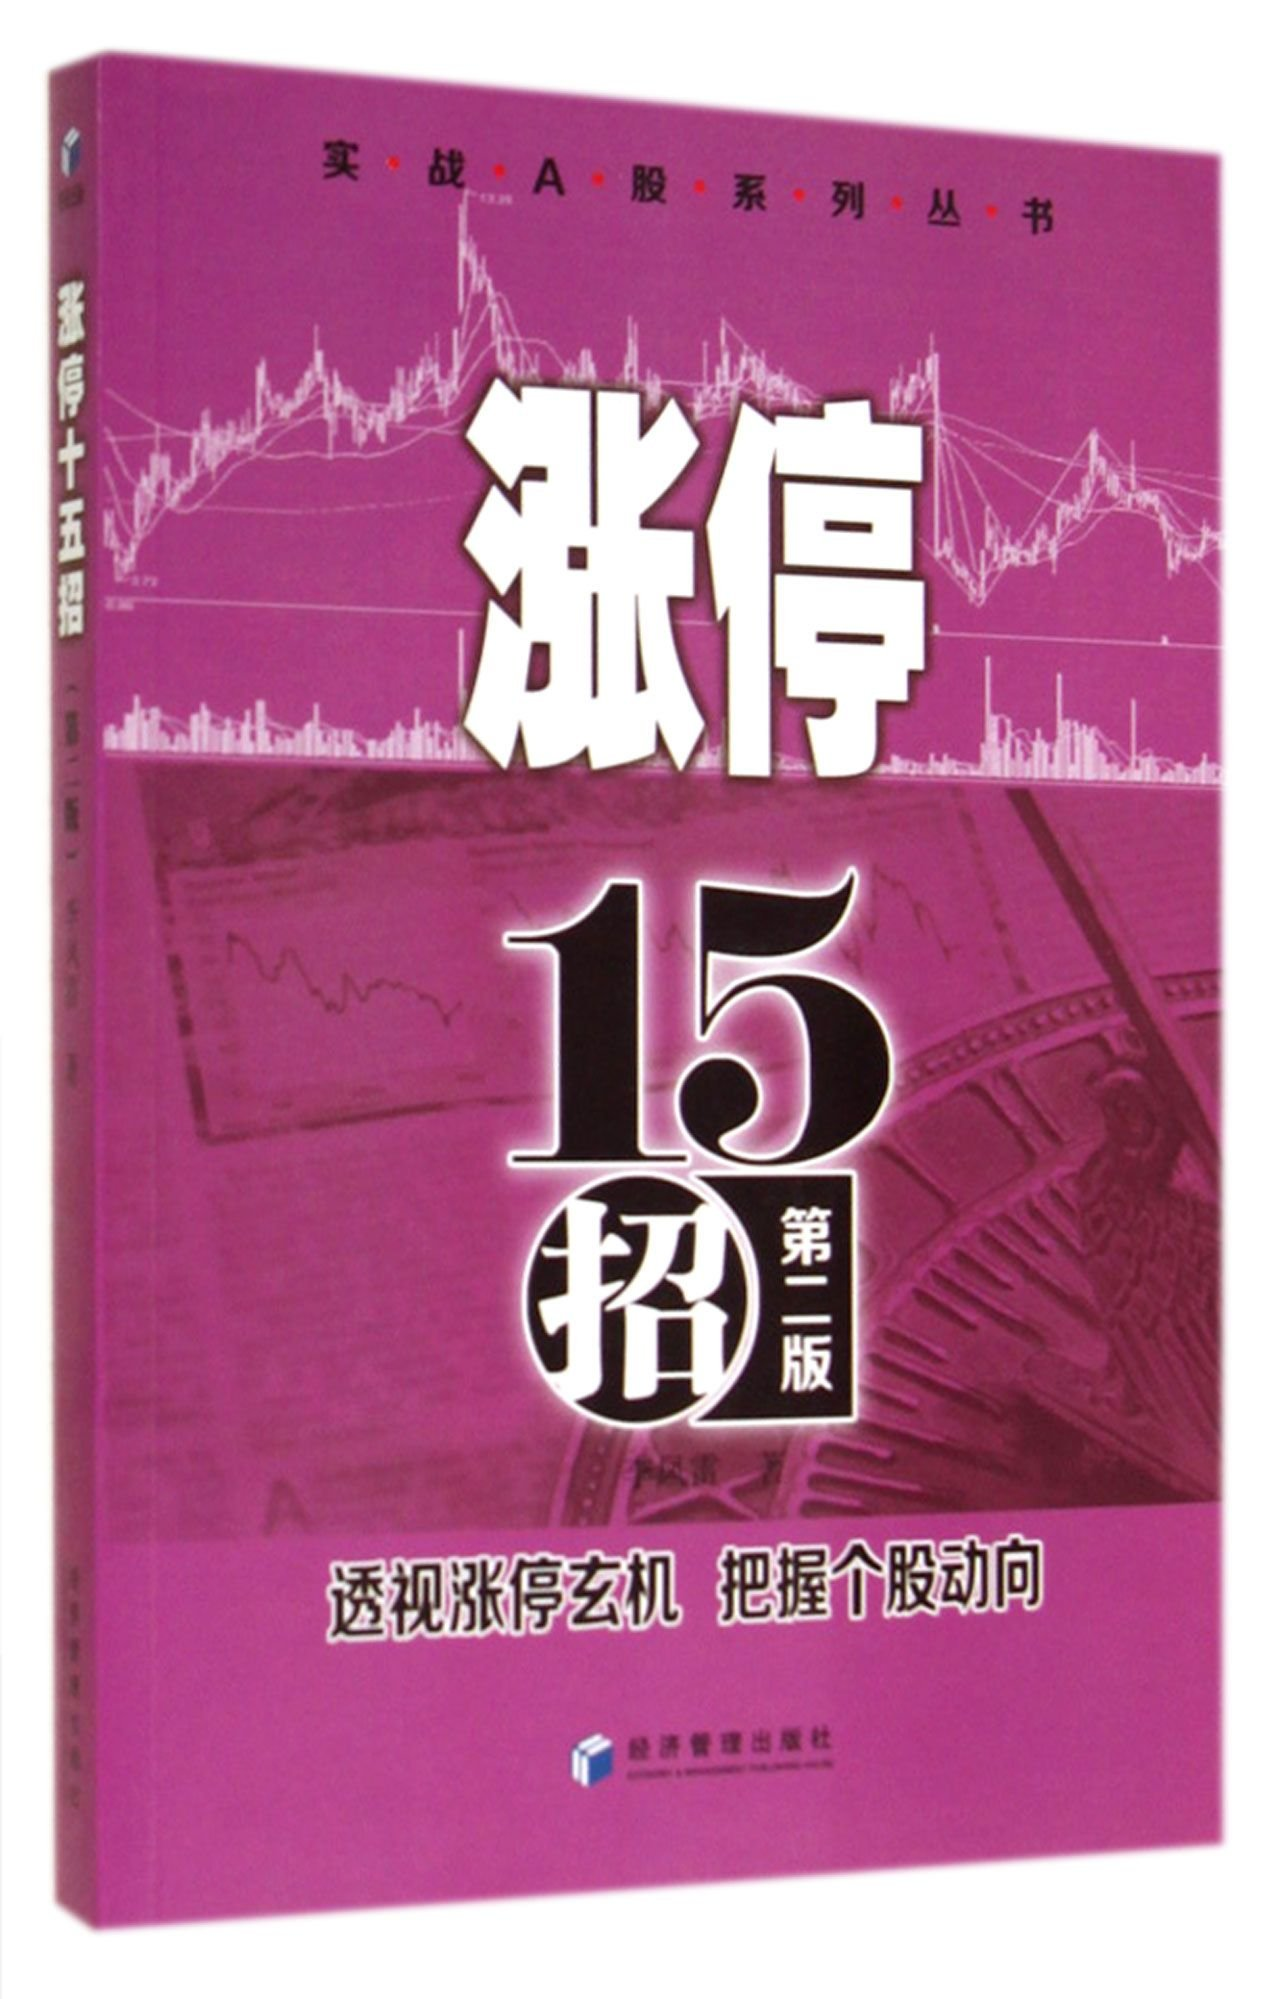 Download Combat series A shares: limit fifteen strokes (Second Edition)(Chinese Edition) ebook